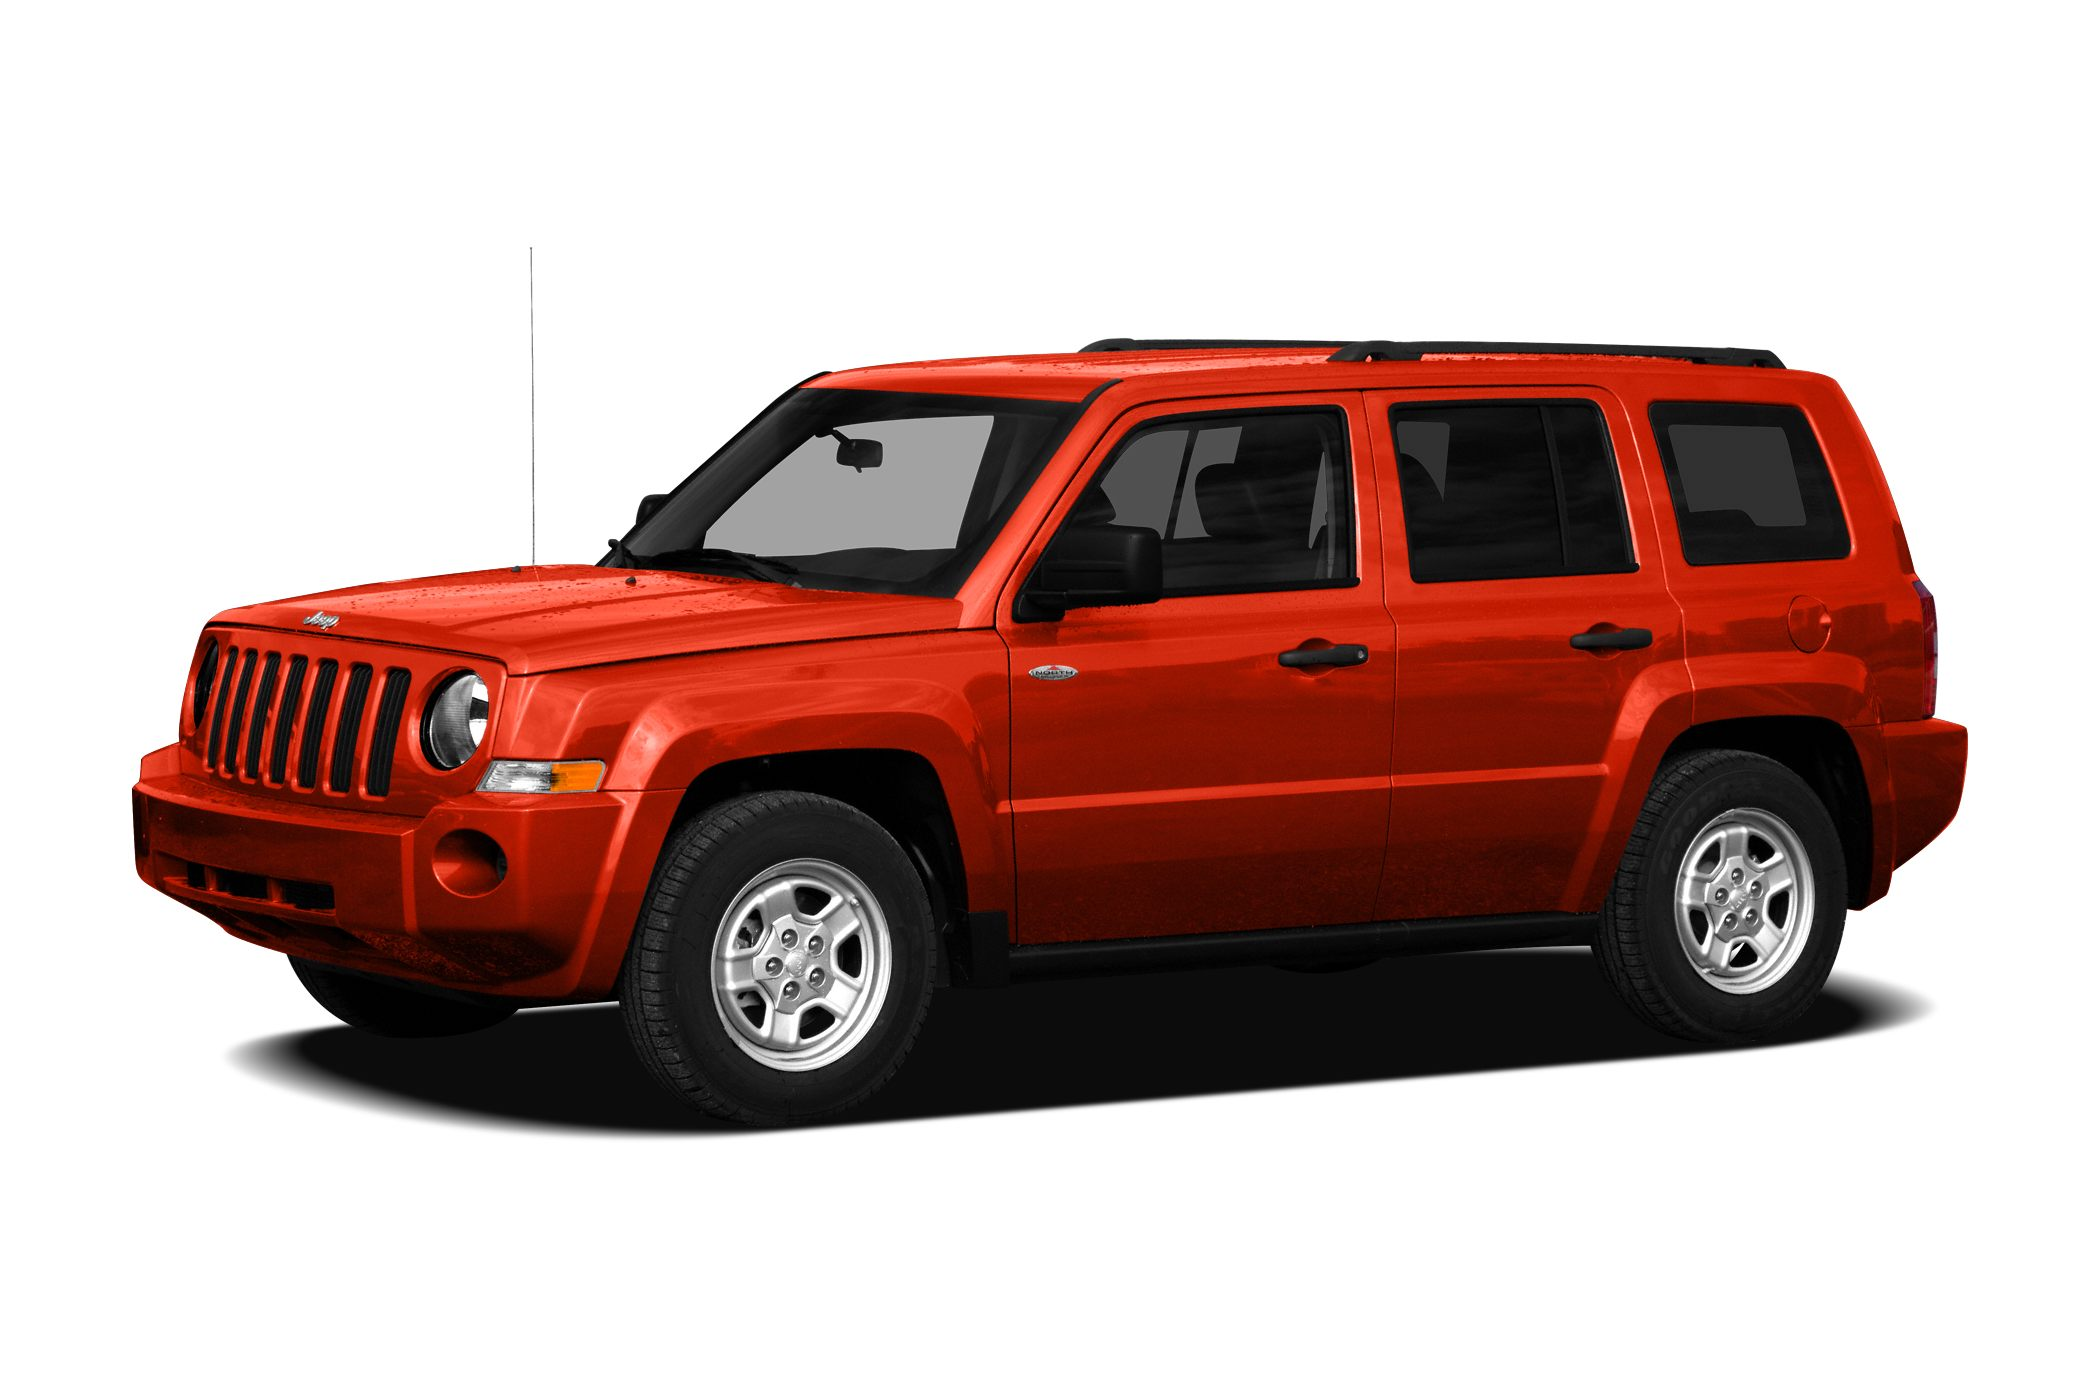 2010 Jeep Patriot Sport SUV for sale in Salem for $8,994 with 123,190 miles